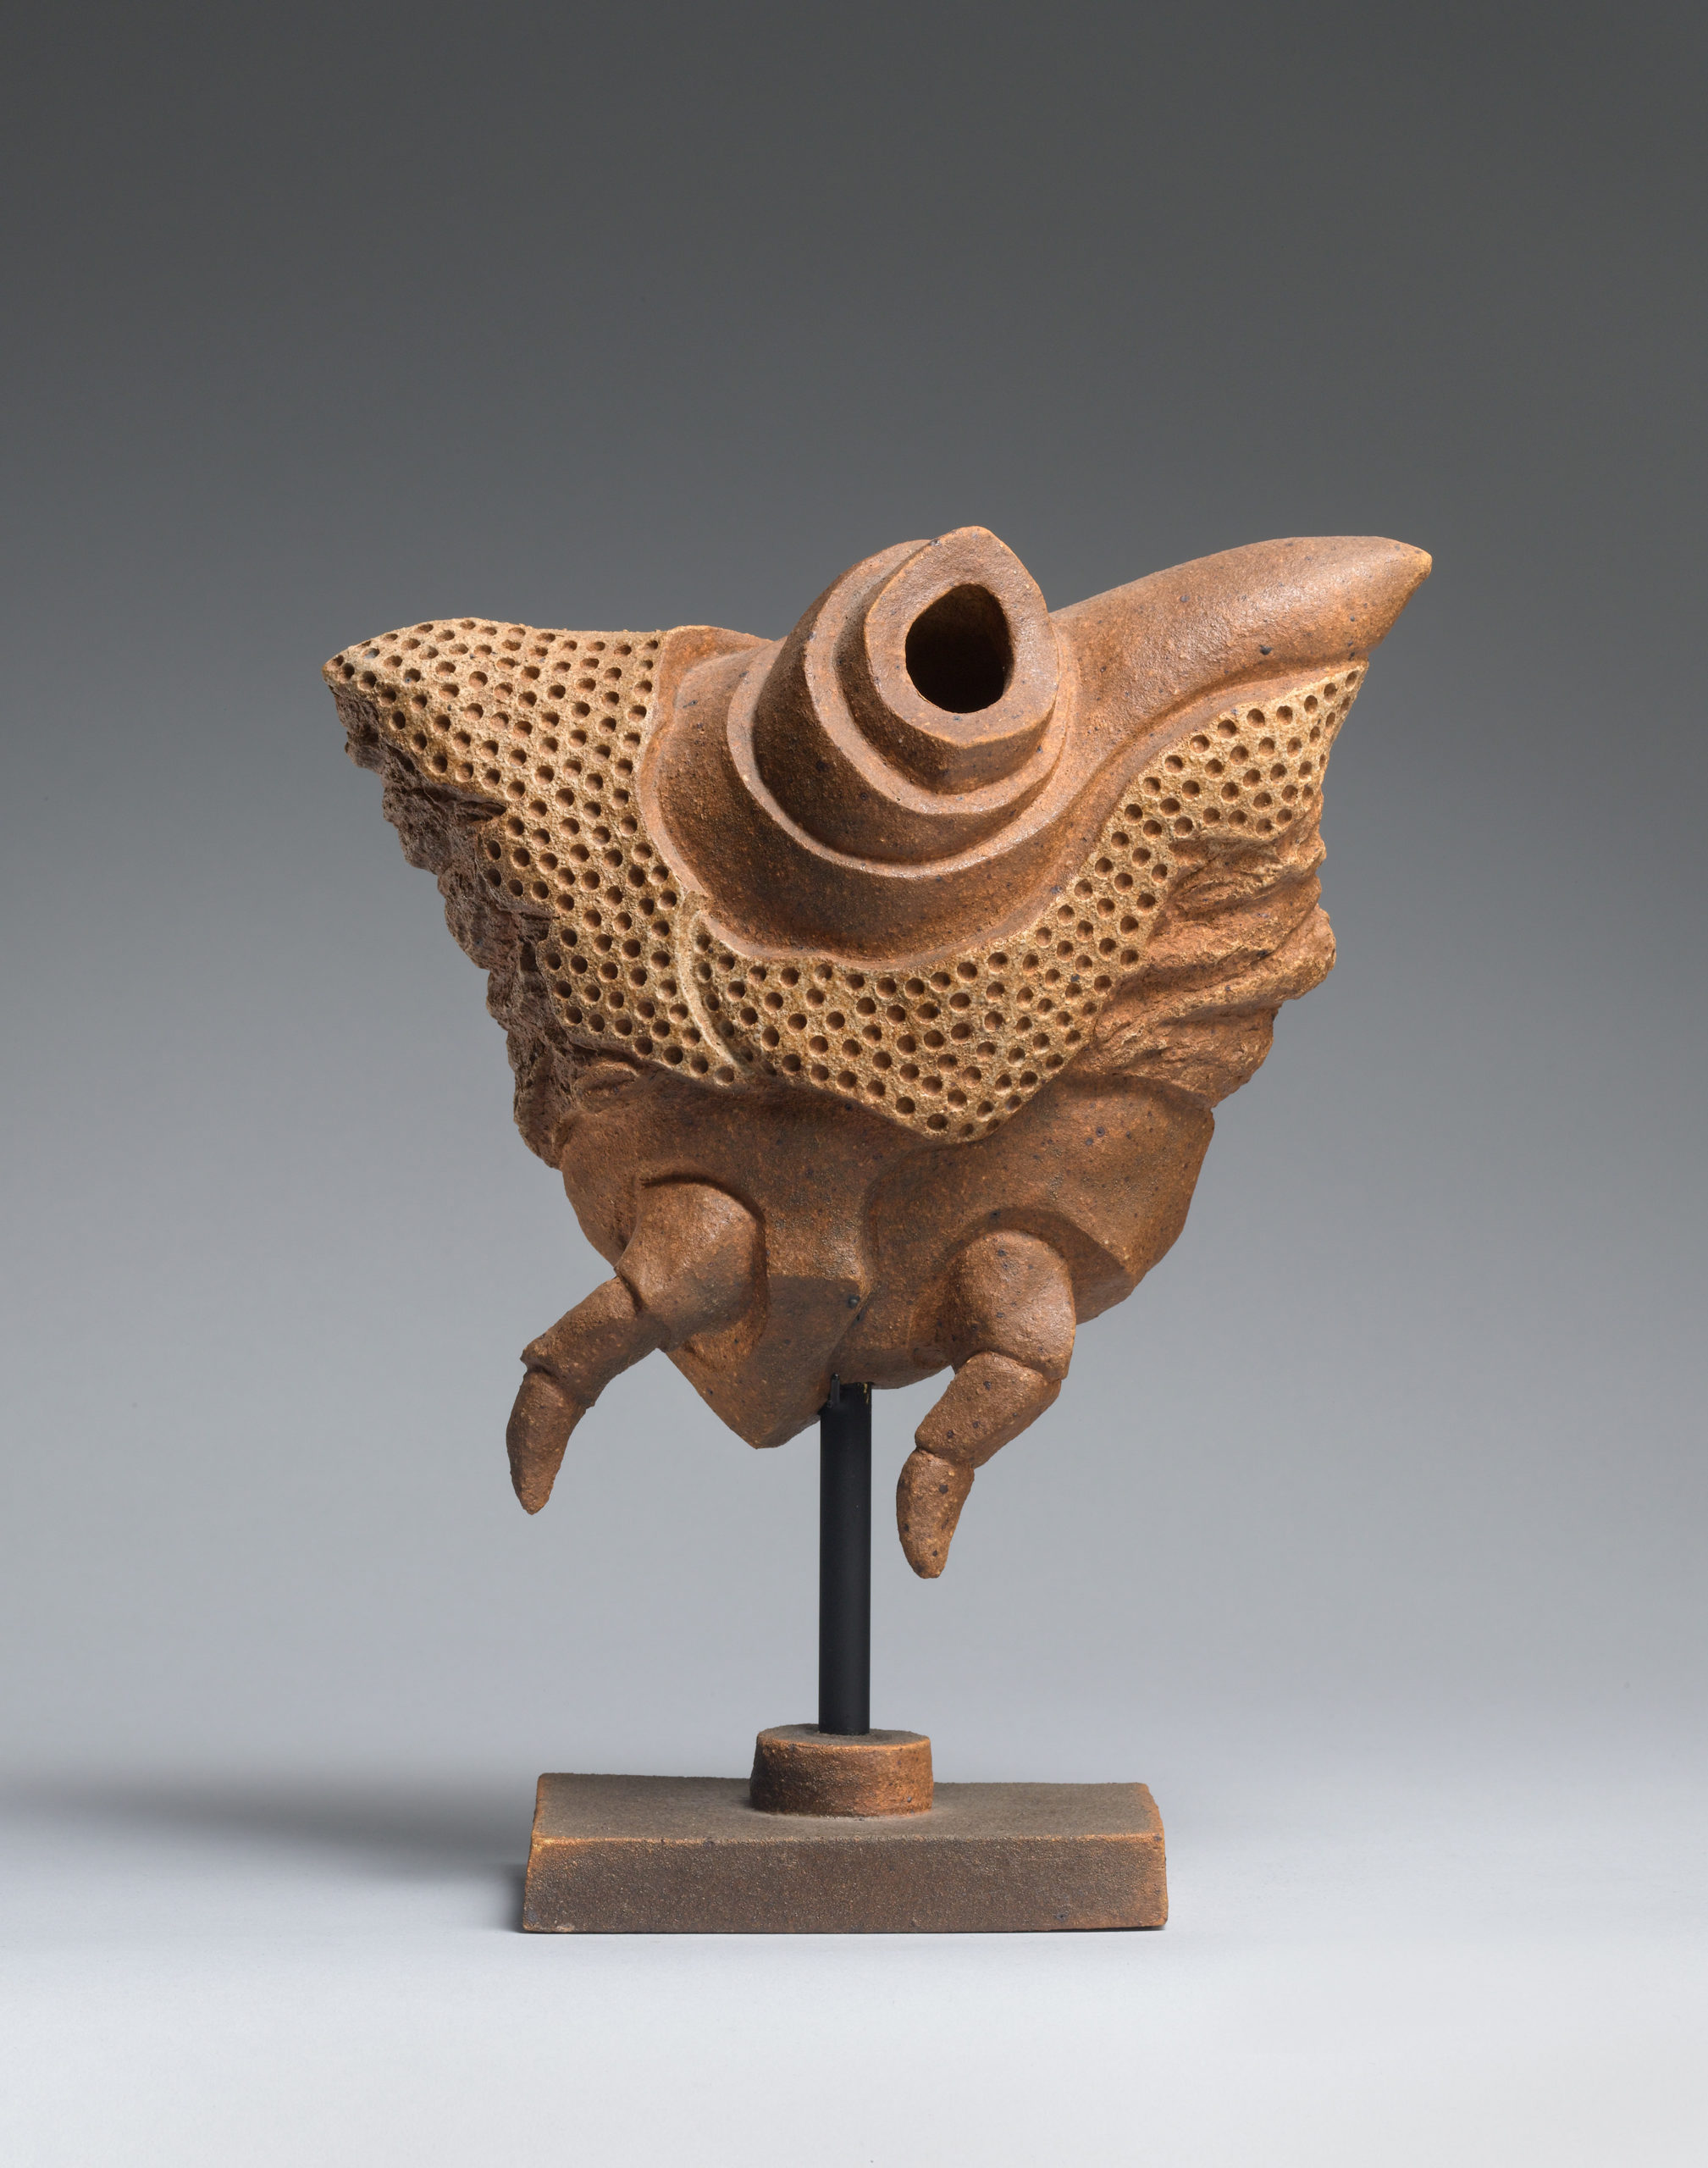 Brown triangular sculpture with mulitple small holes, two smalls legs, and a large hole atop, held up on a short brown pedestal.